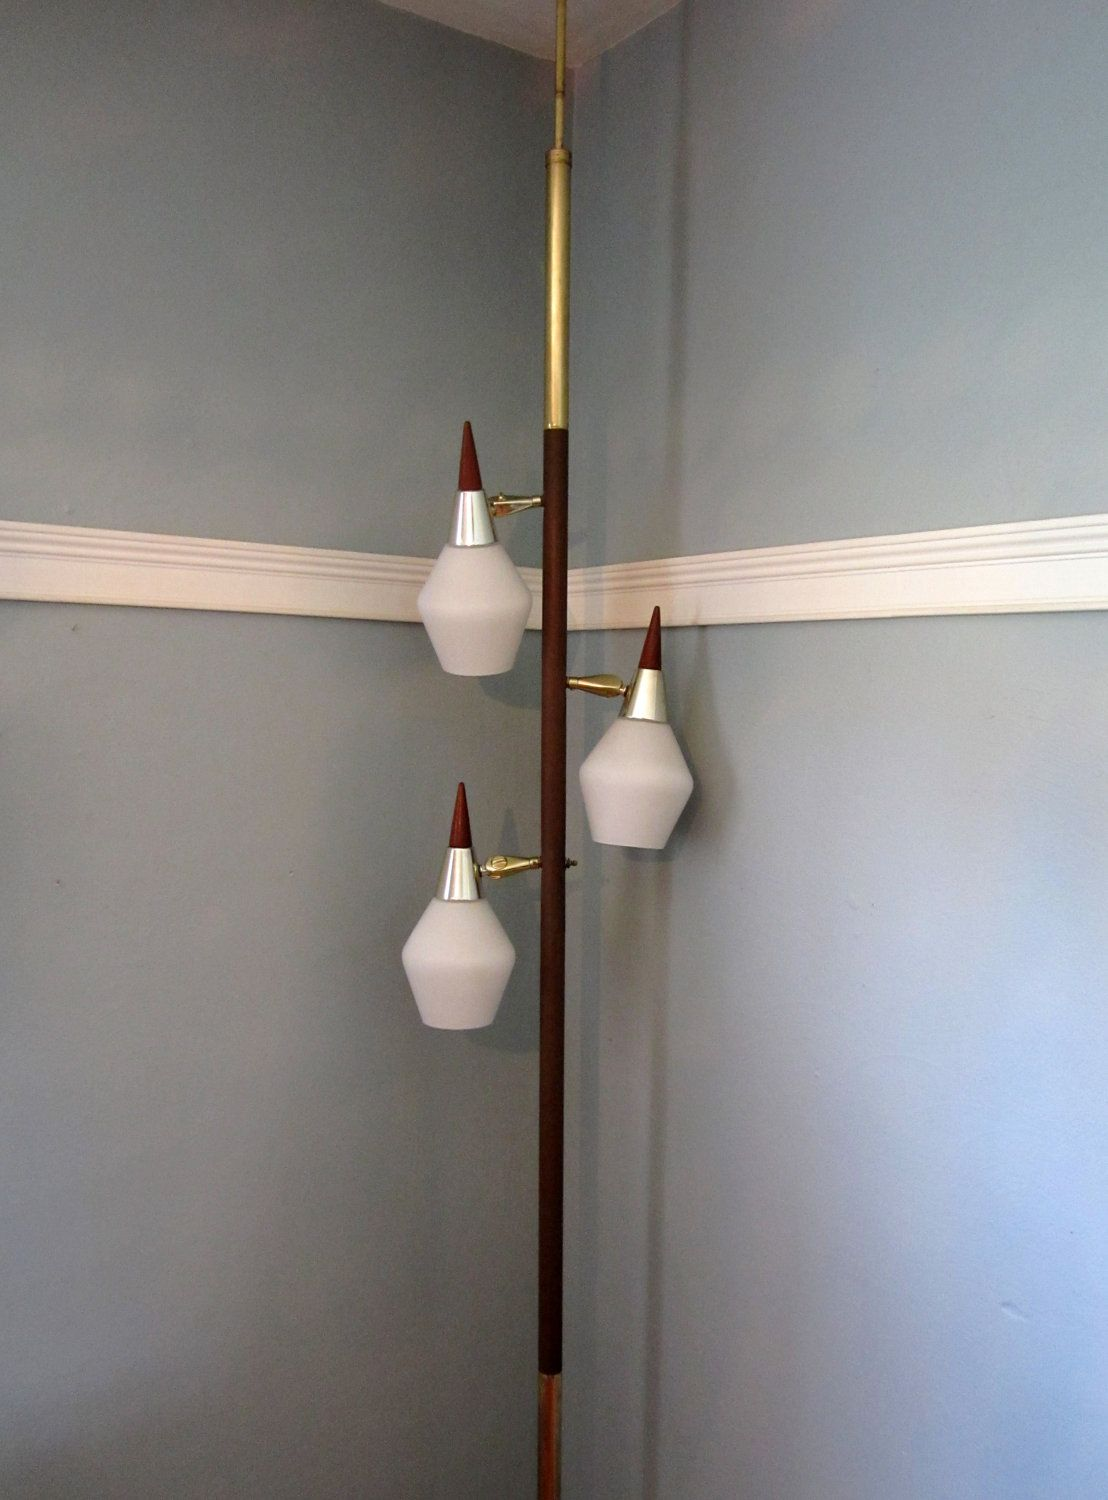 Delightful Tension Pole Lamp Parts   Google Search